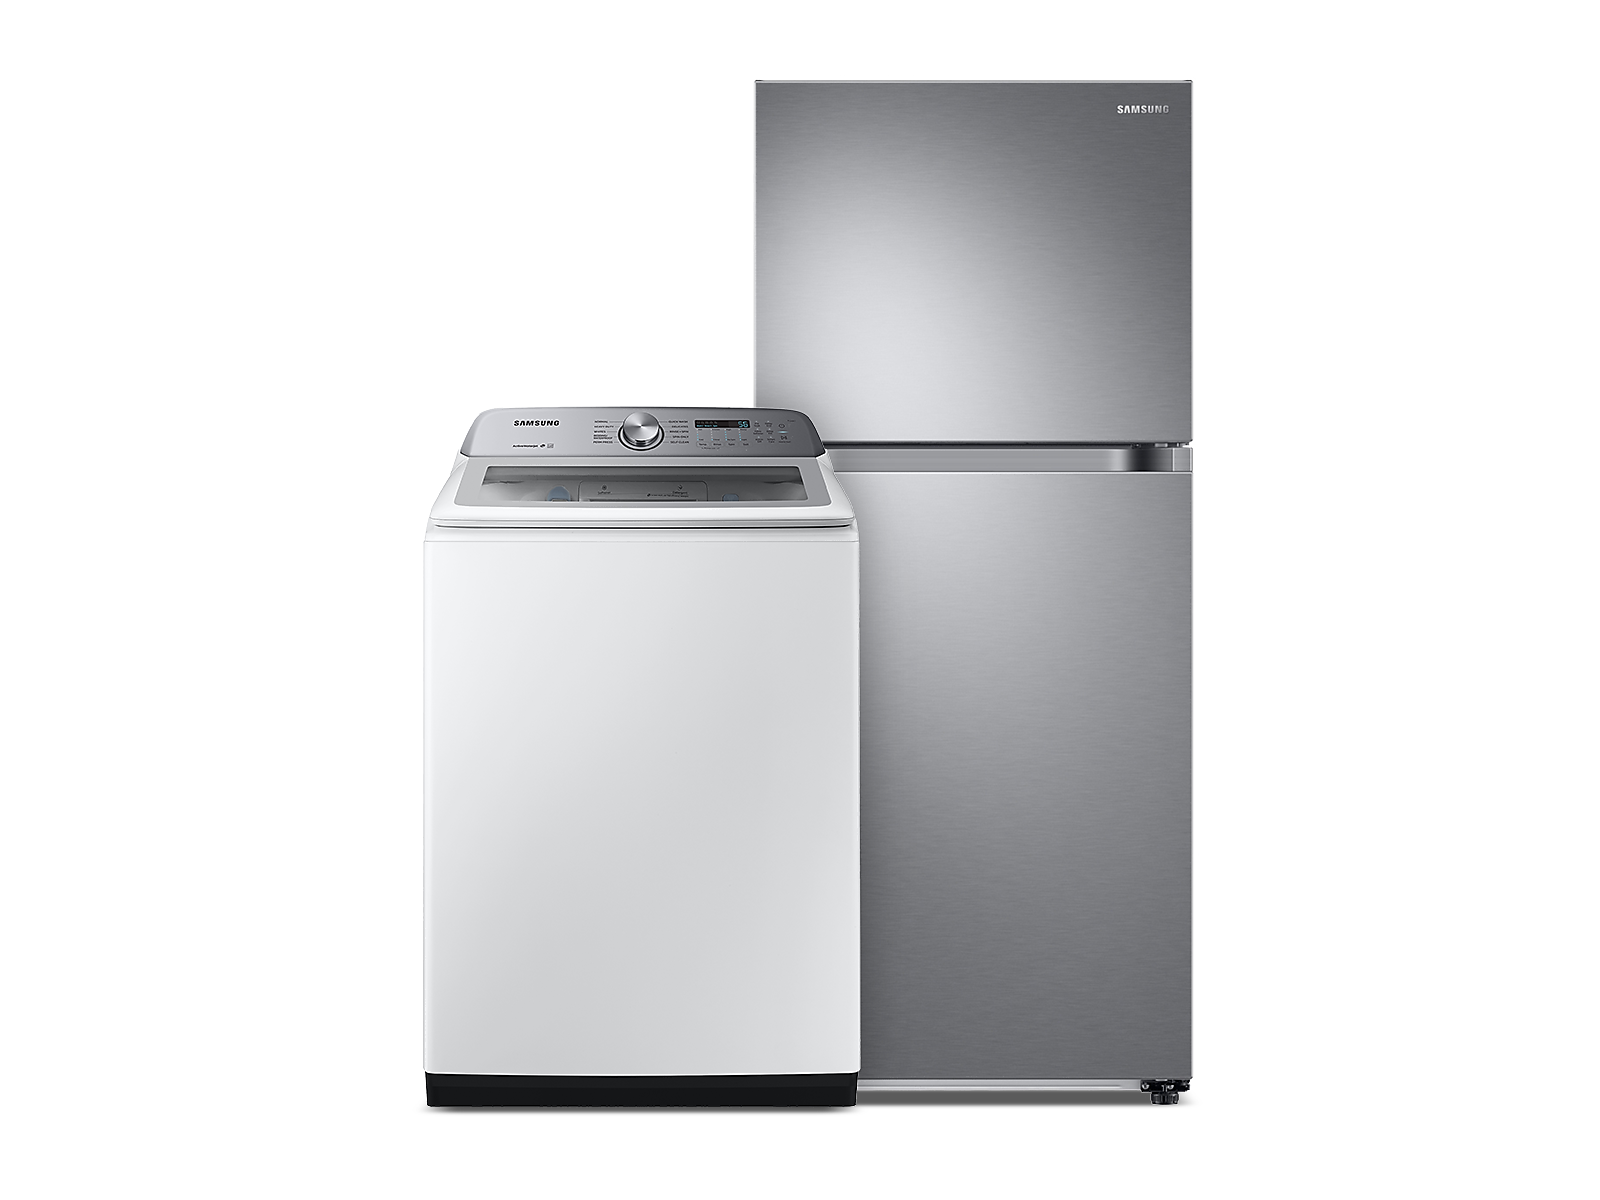 Samsung coupon: Samsung Large Capacity Top Load Washer with Active WaterJet & Top Freezer Refrigerator with FlexZone and Ice Maker